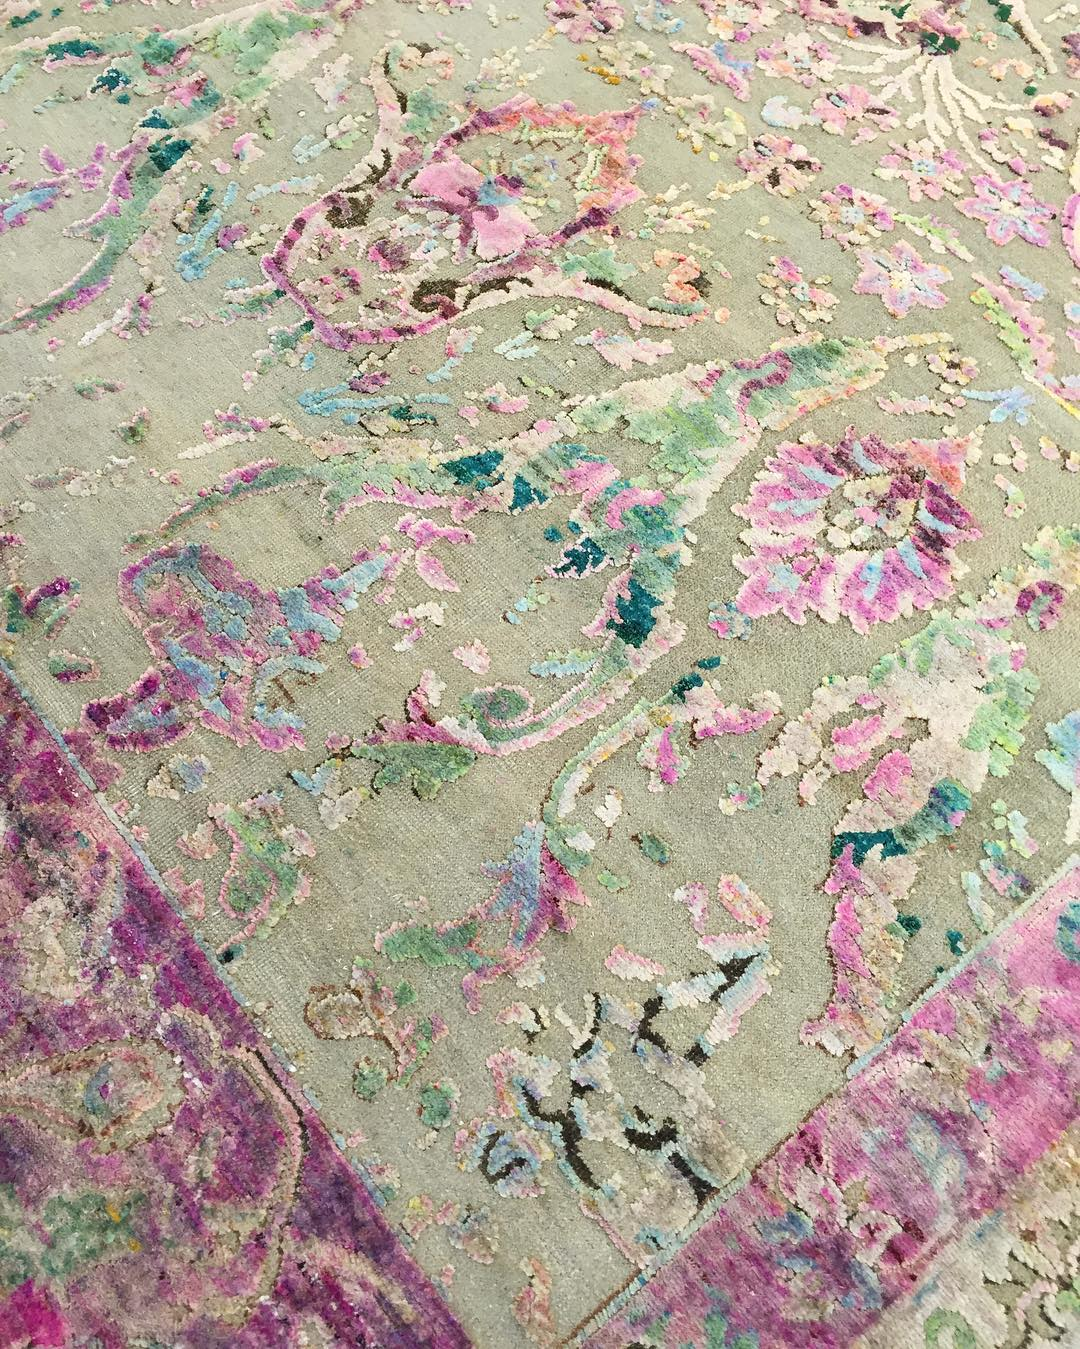 A close up of the rug featured...